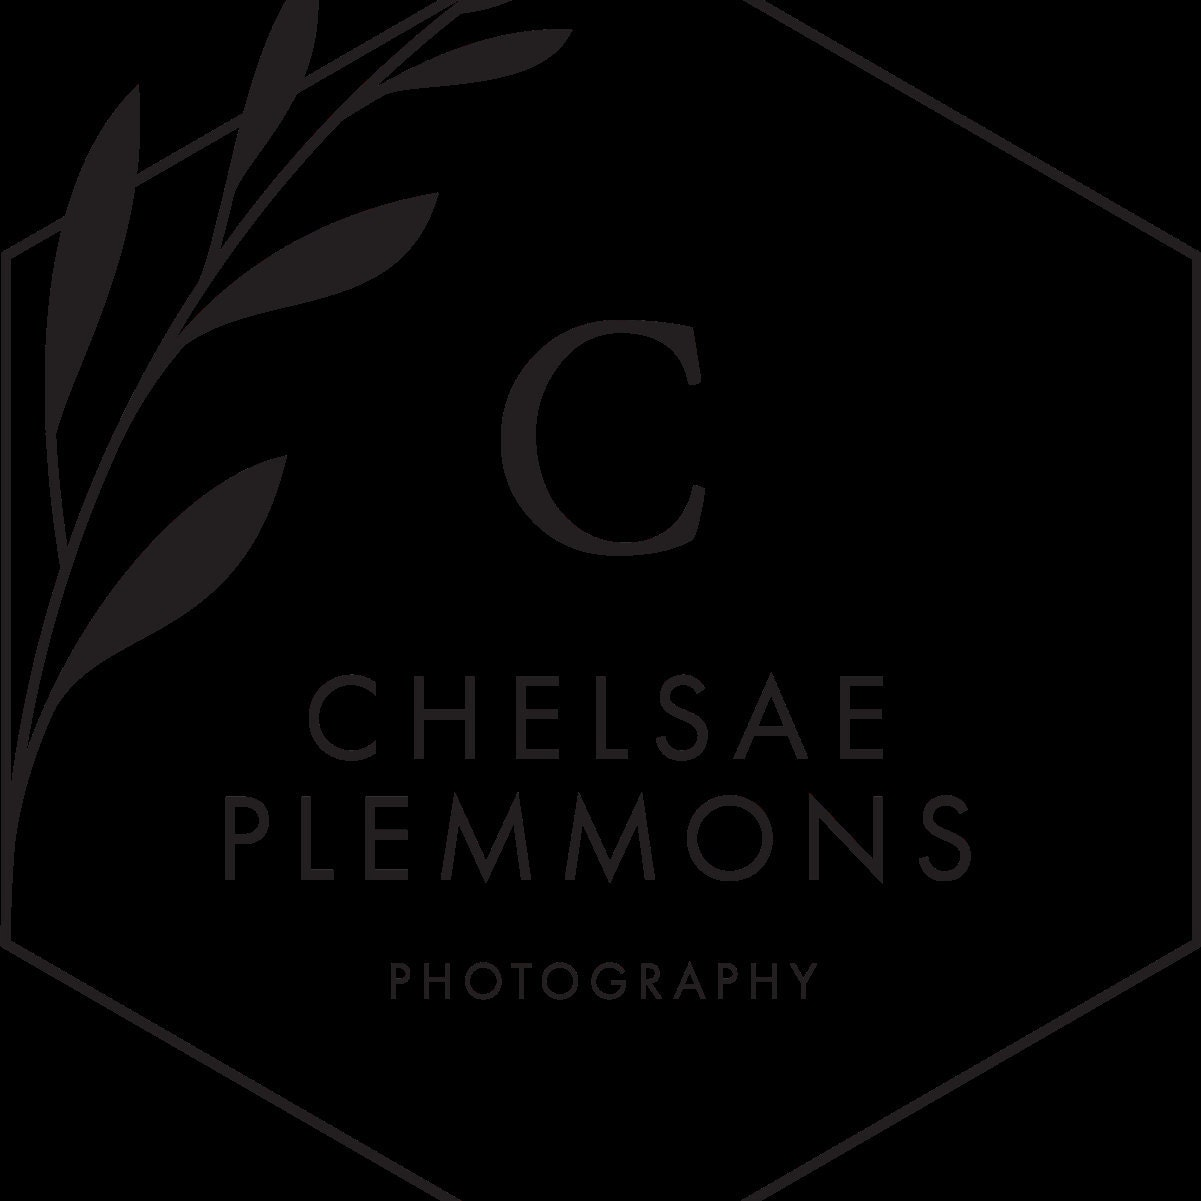 Chelsae Plemmons added a photo of their purchase